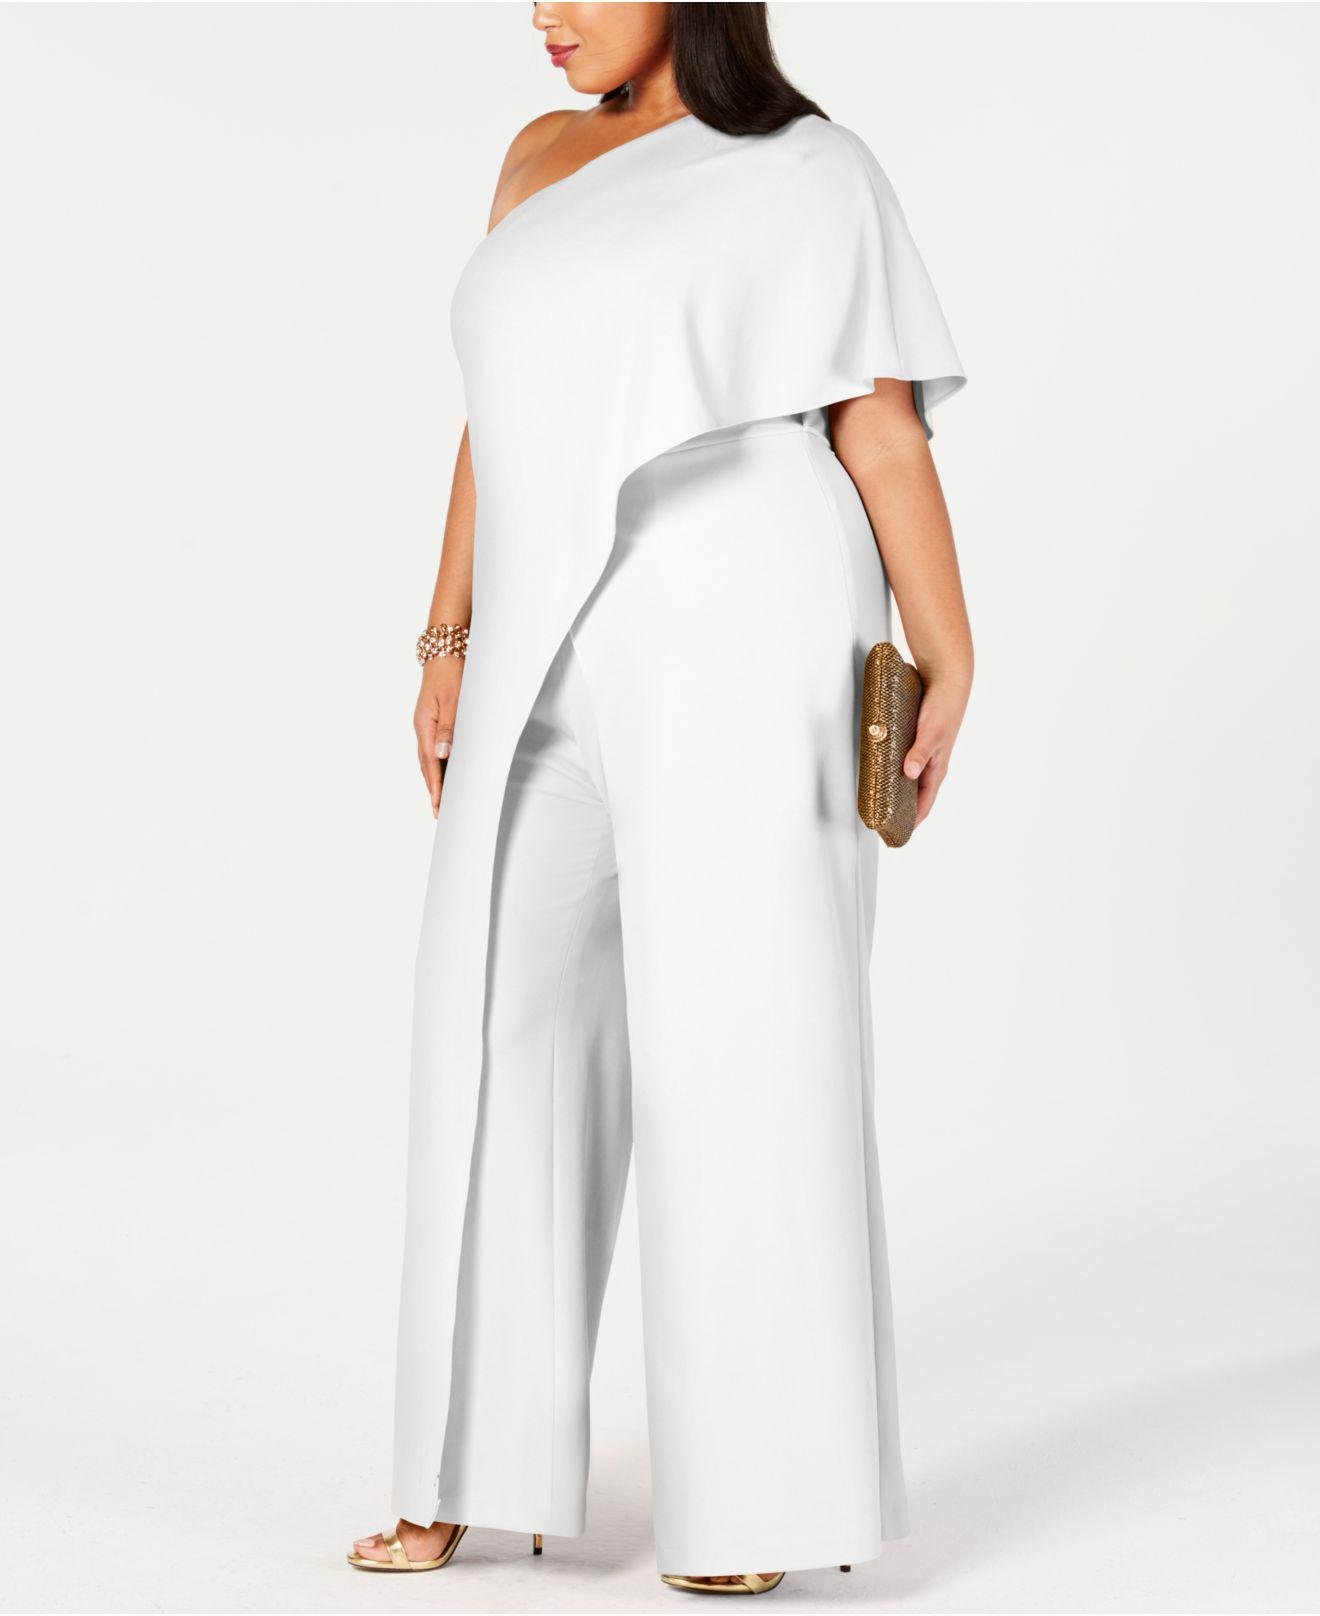 673d3064d14c Lyst - Adrianna Papell Plus Size Draped One-shoulder Jumpsuit in White